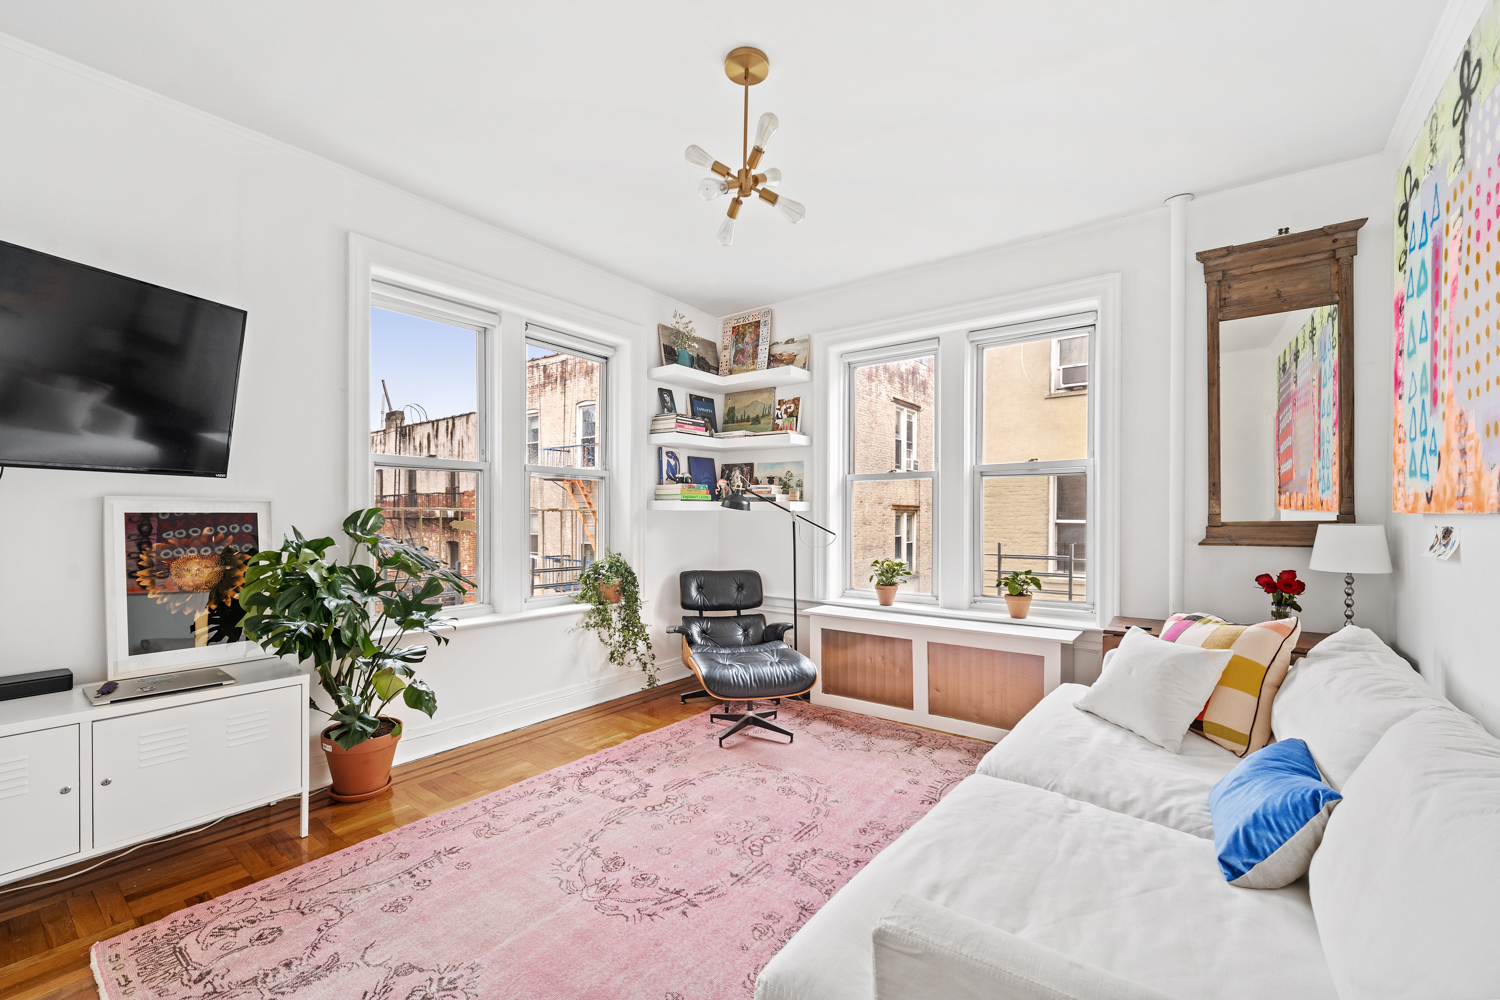 primary photo for 549 41st Street 2-D, Brooklyn, NY 11232, US